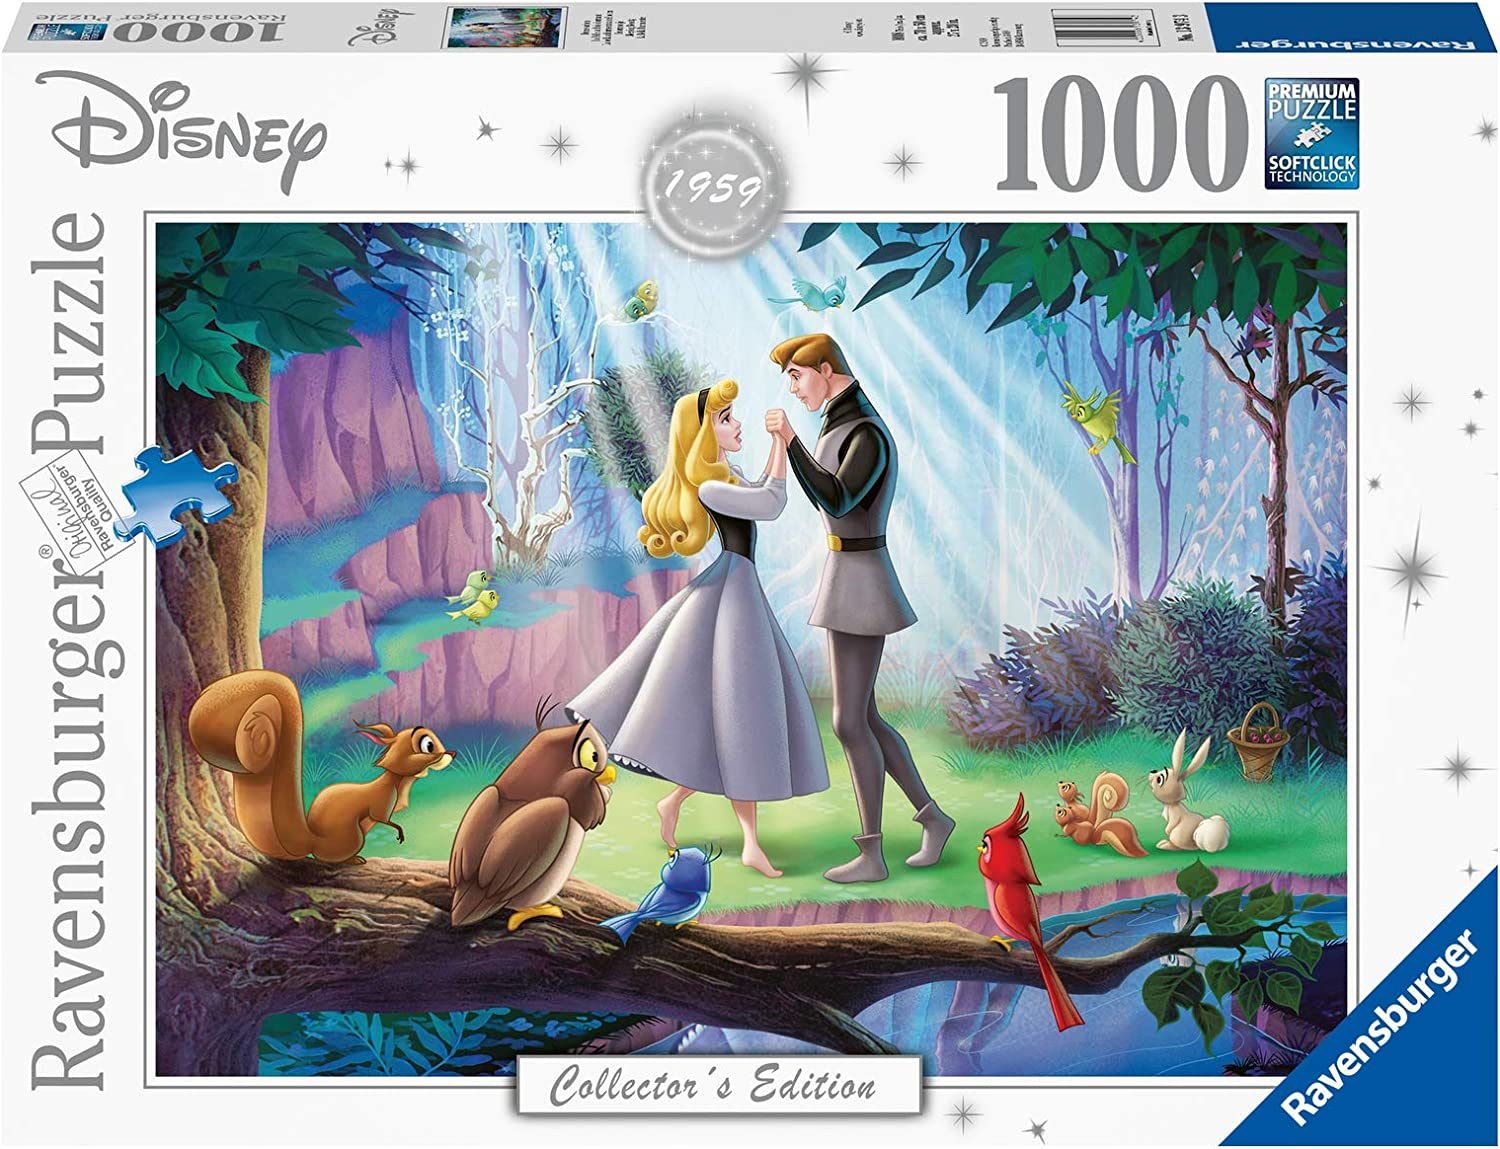 Ravensburger Disney Collector's Edition Sleeping Beauty 1000 Piece Jigsaw Puzzle for Adults - Every Piece is Unique, Softclick Technology Means Pieces Fit Together Perfectly